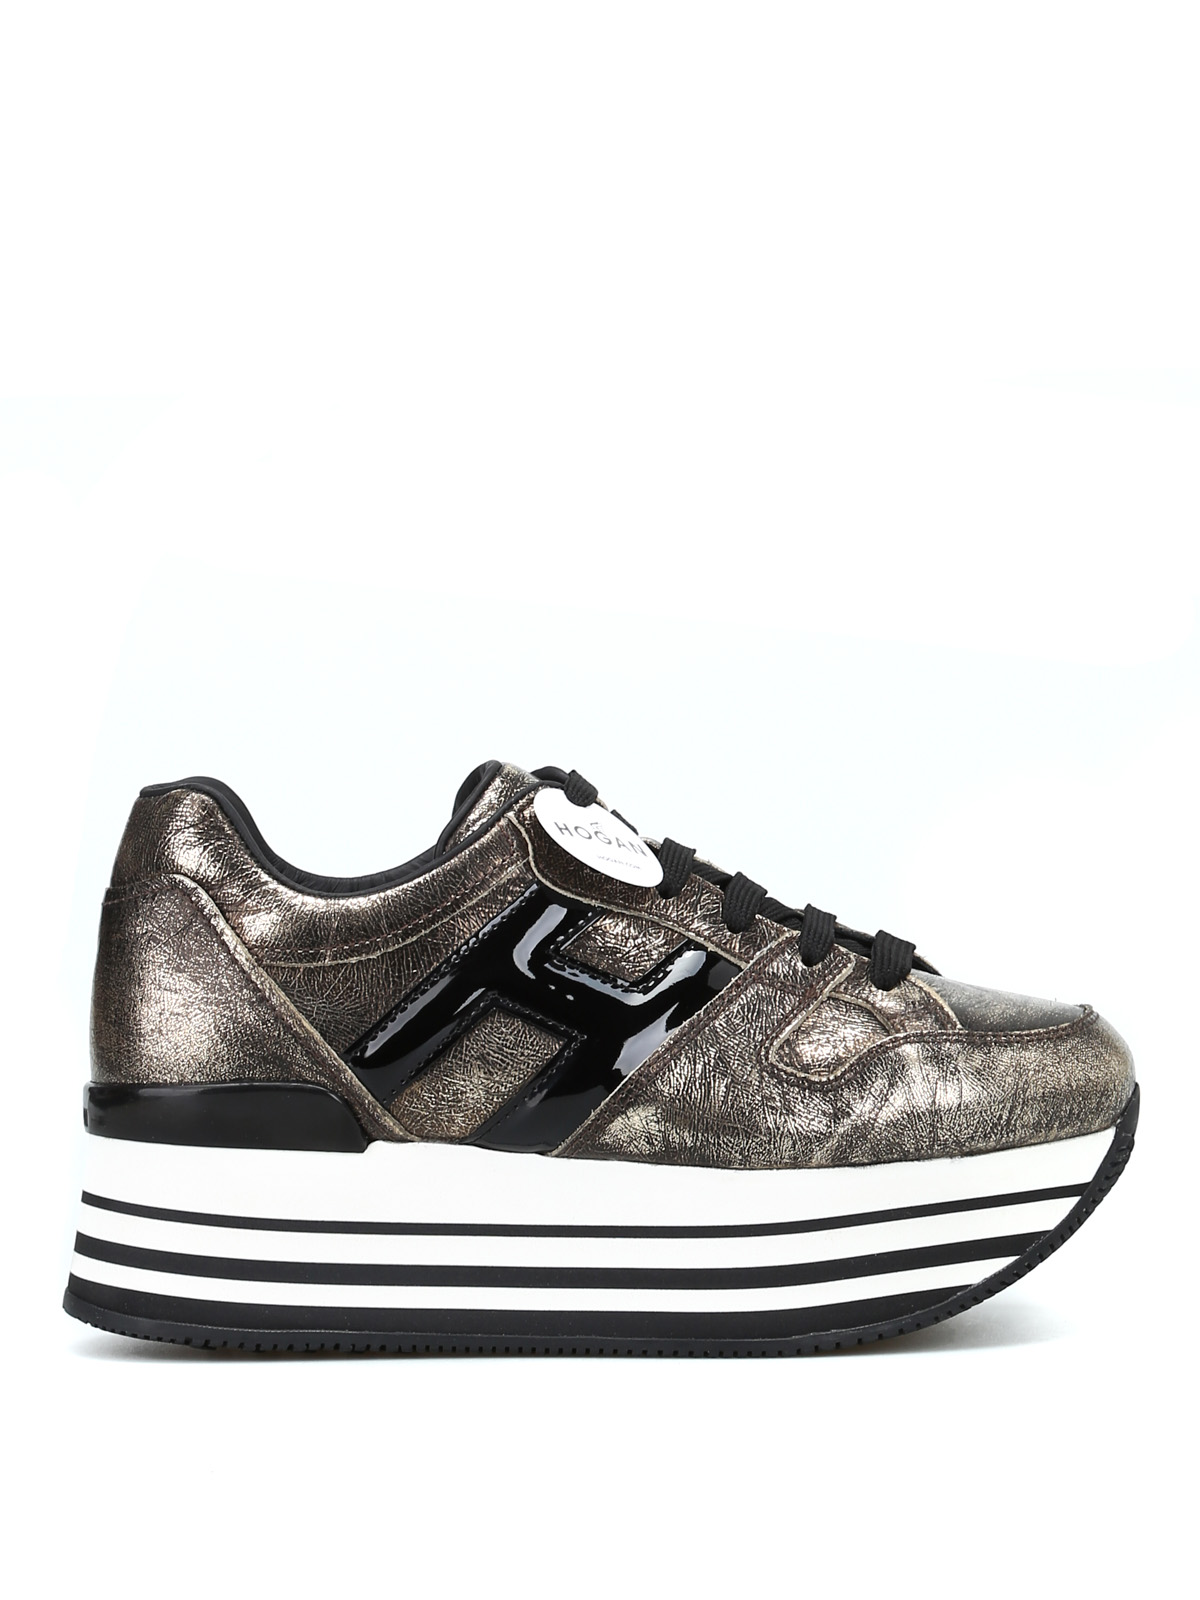 Trainers Hogan - Maxi H222 crackle effect sneakers ...